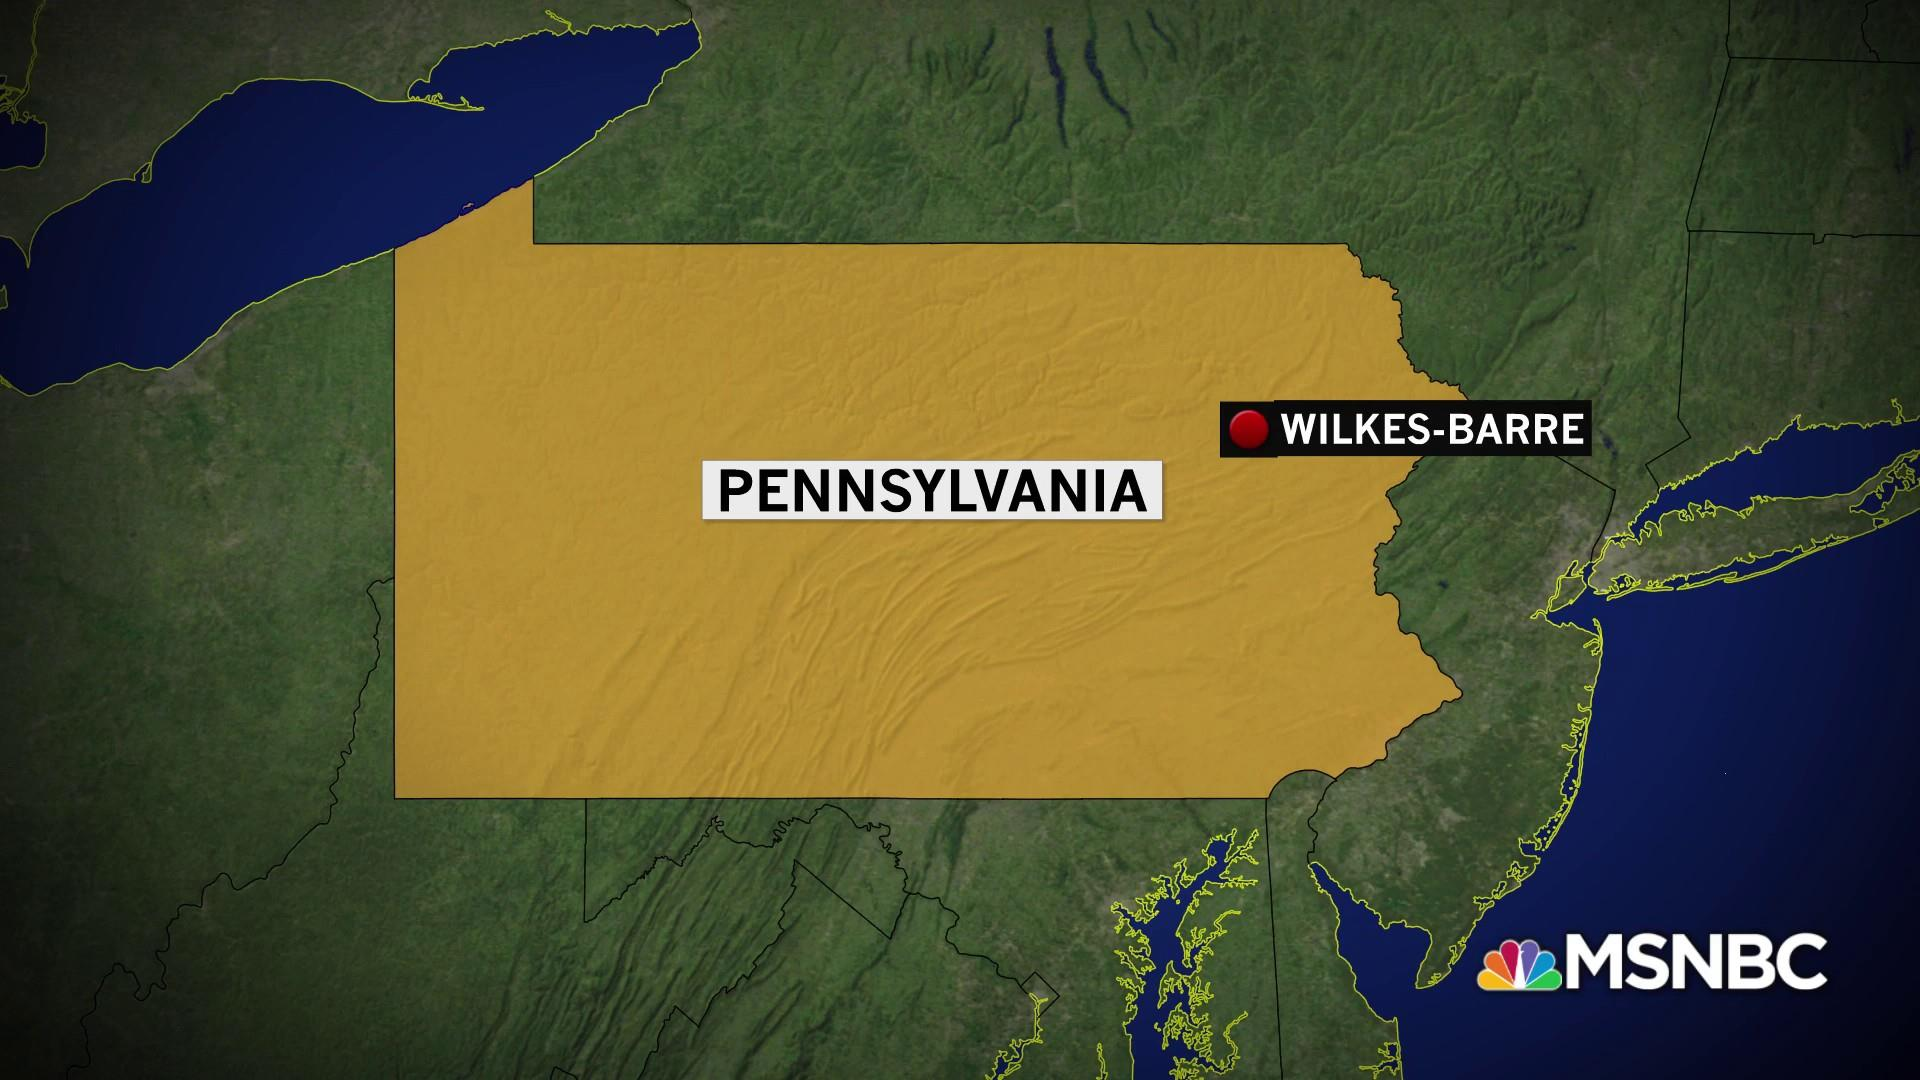 How the heck do you pronounce Wilkes-Barre, Pennsylvania?